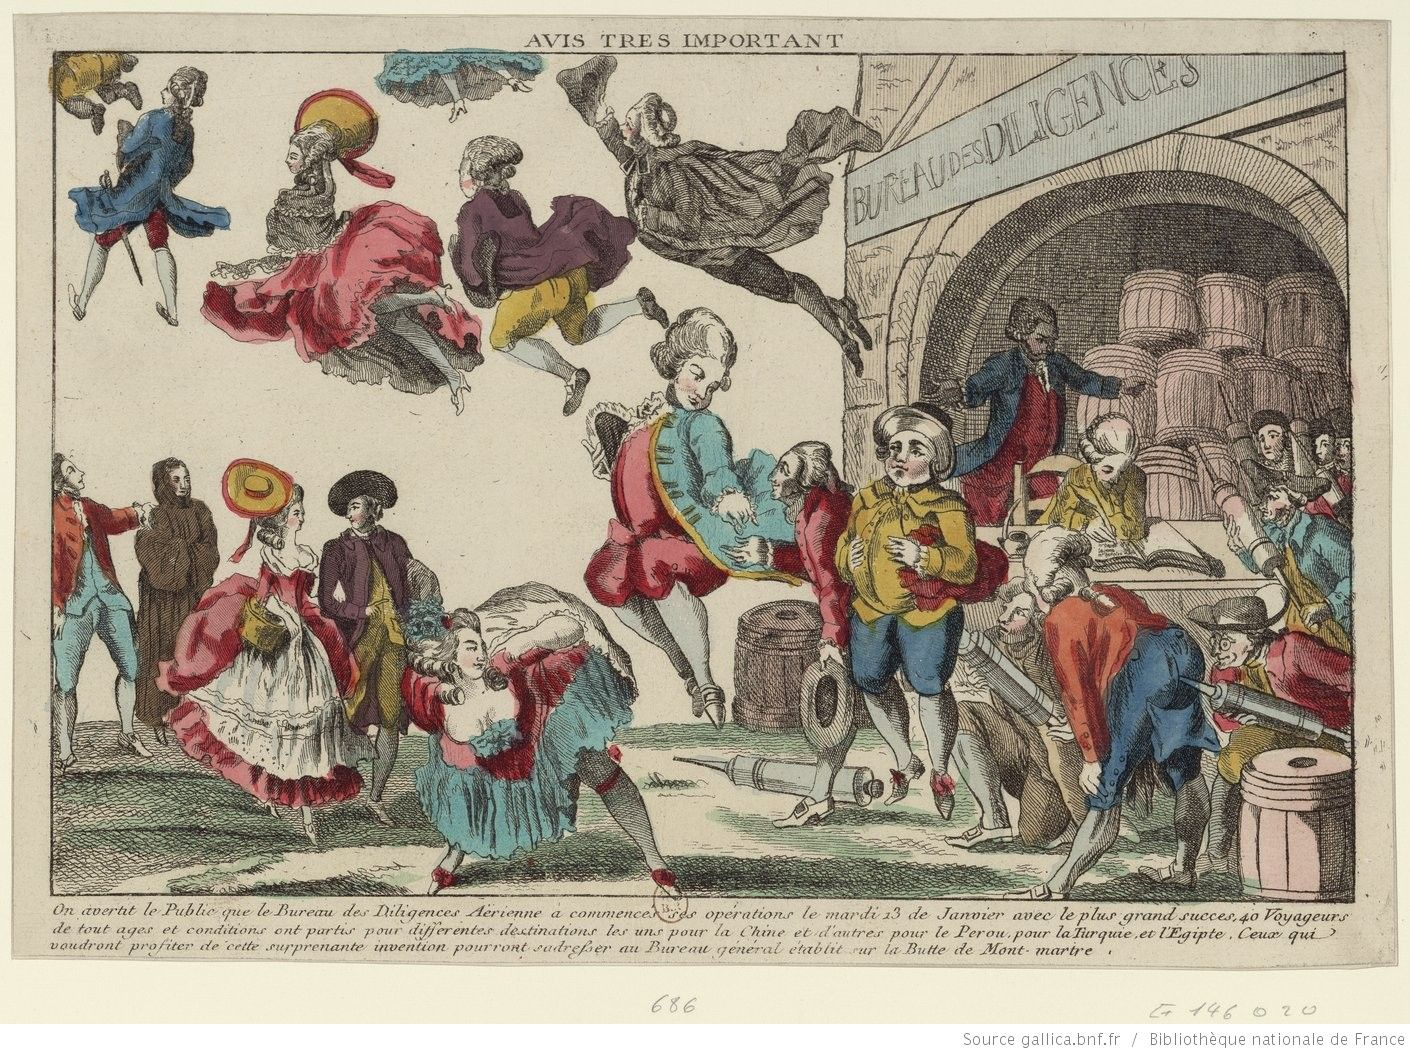 'Avis très important [Very important notice]', 1783. Satire on hot air balloon flight, ostensibly an advertisement. People line up at the 'Bureau des Diligences Aériennes', where assistants with clyster-pipes (enemas) pump them full of air via their rear ends to make them float.